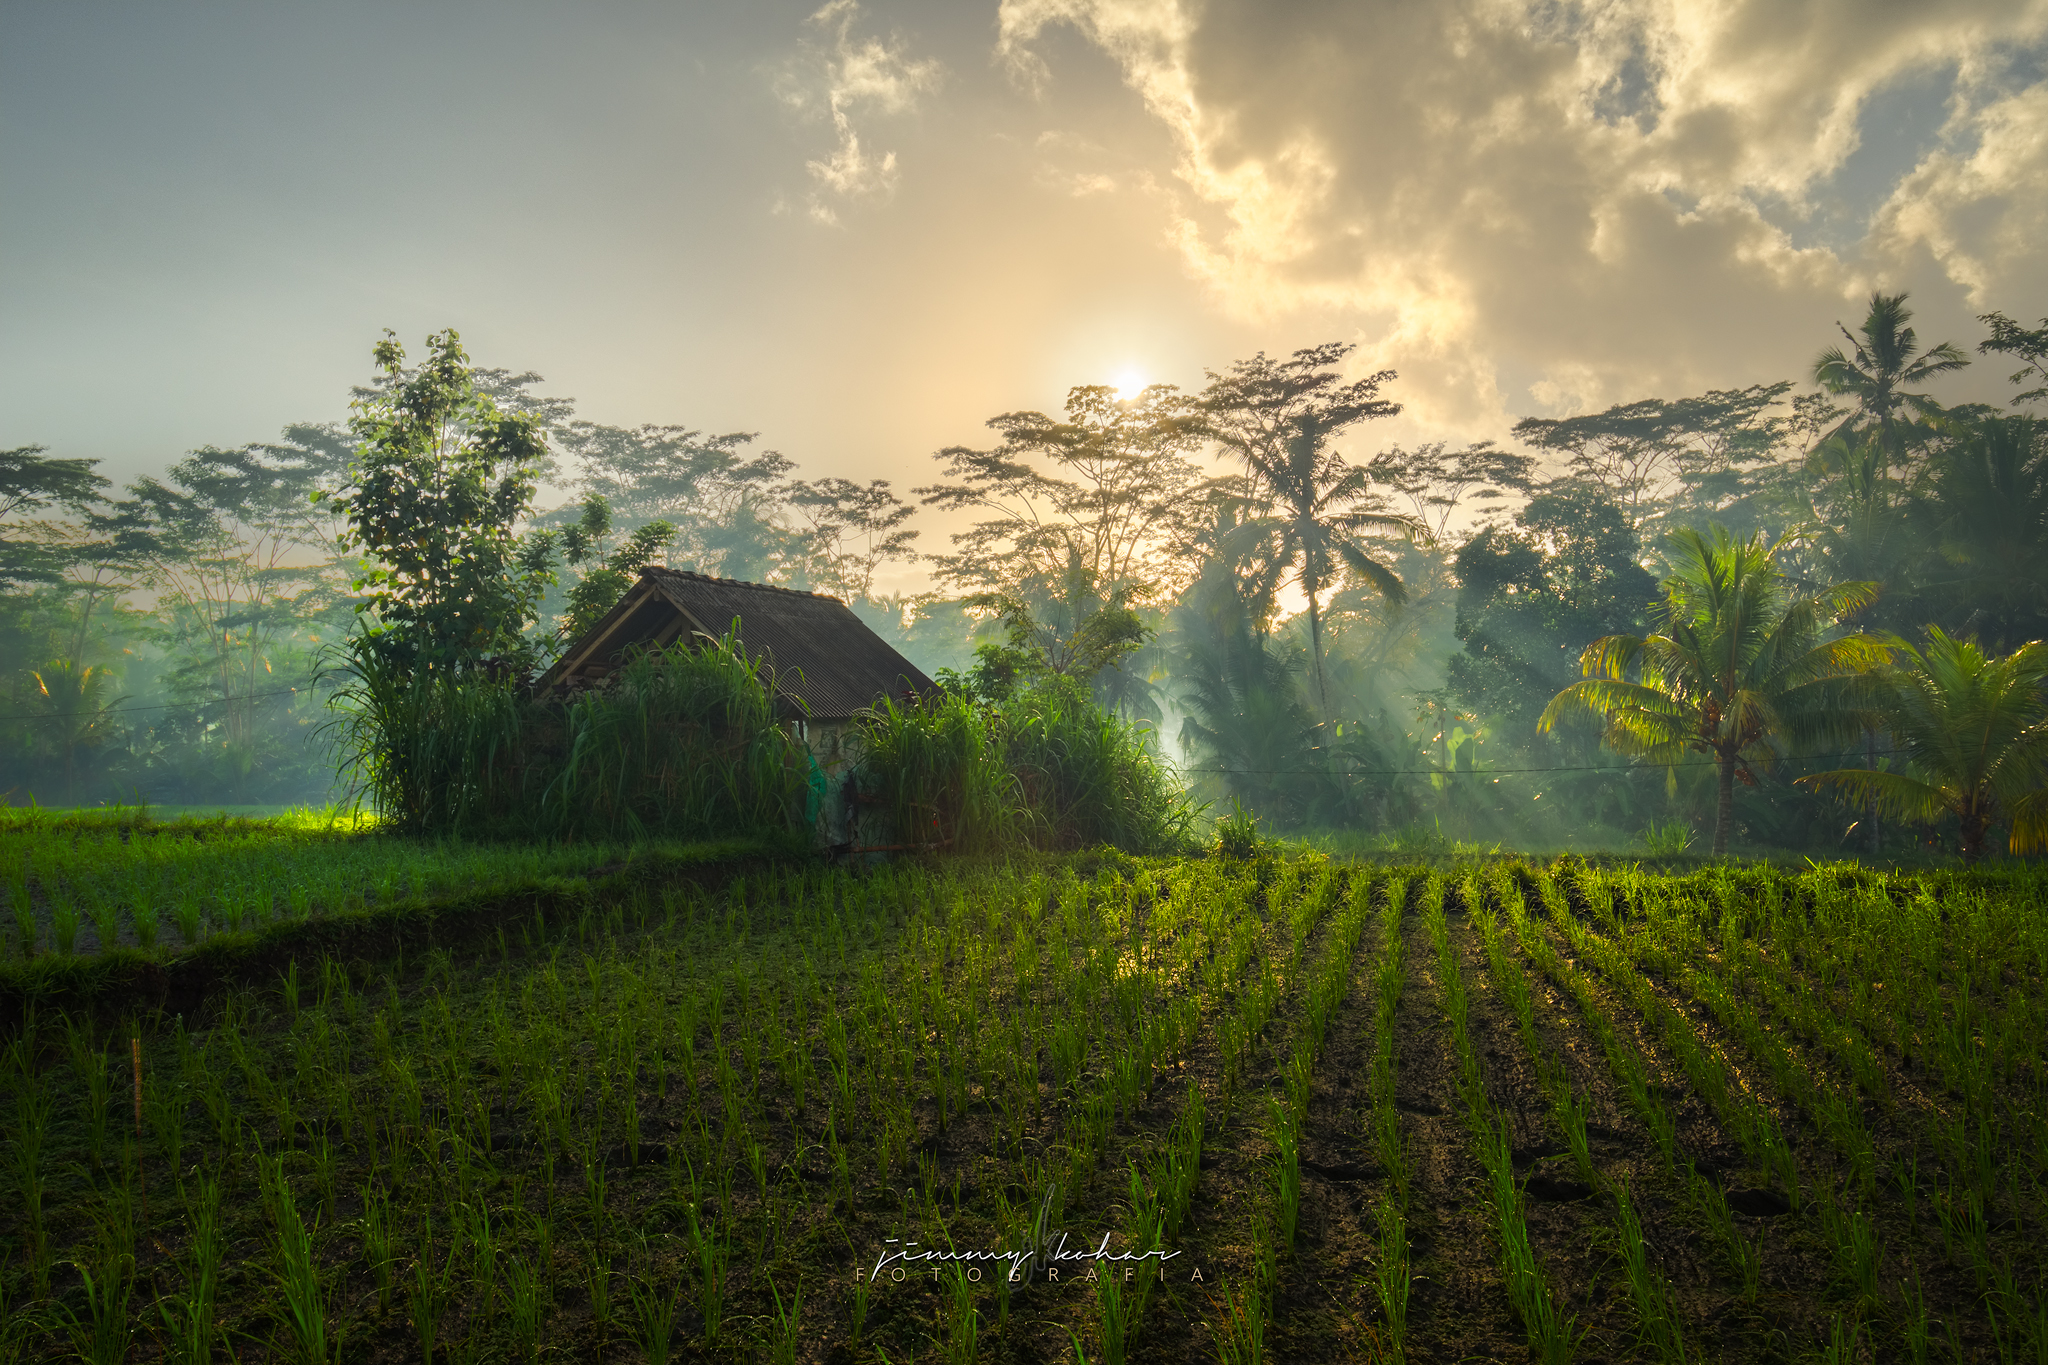 Morning Rays at Susut Rice Terrace, Bali, Indonesia